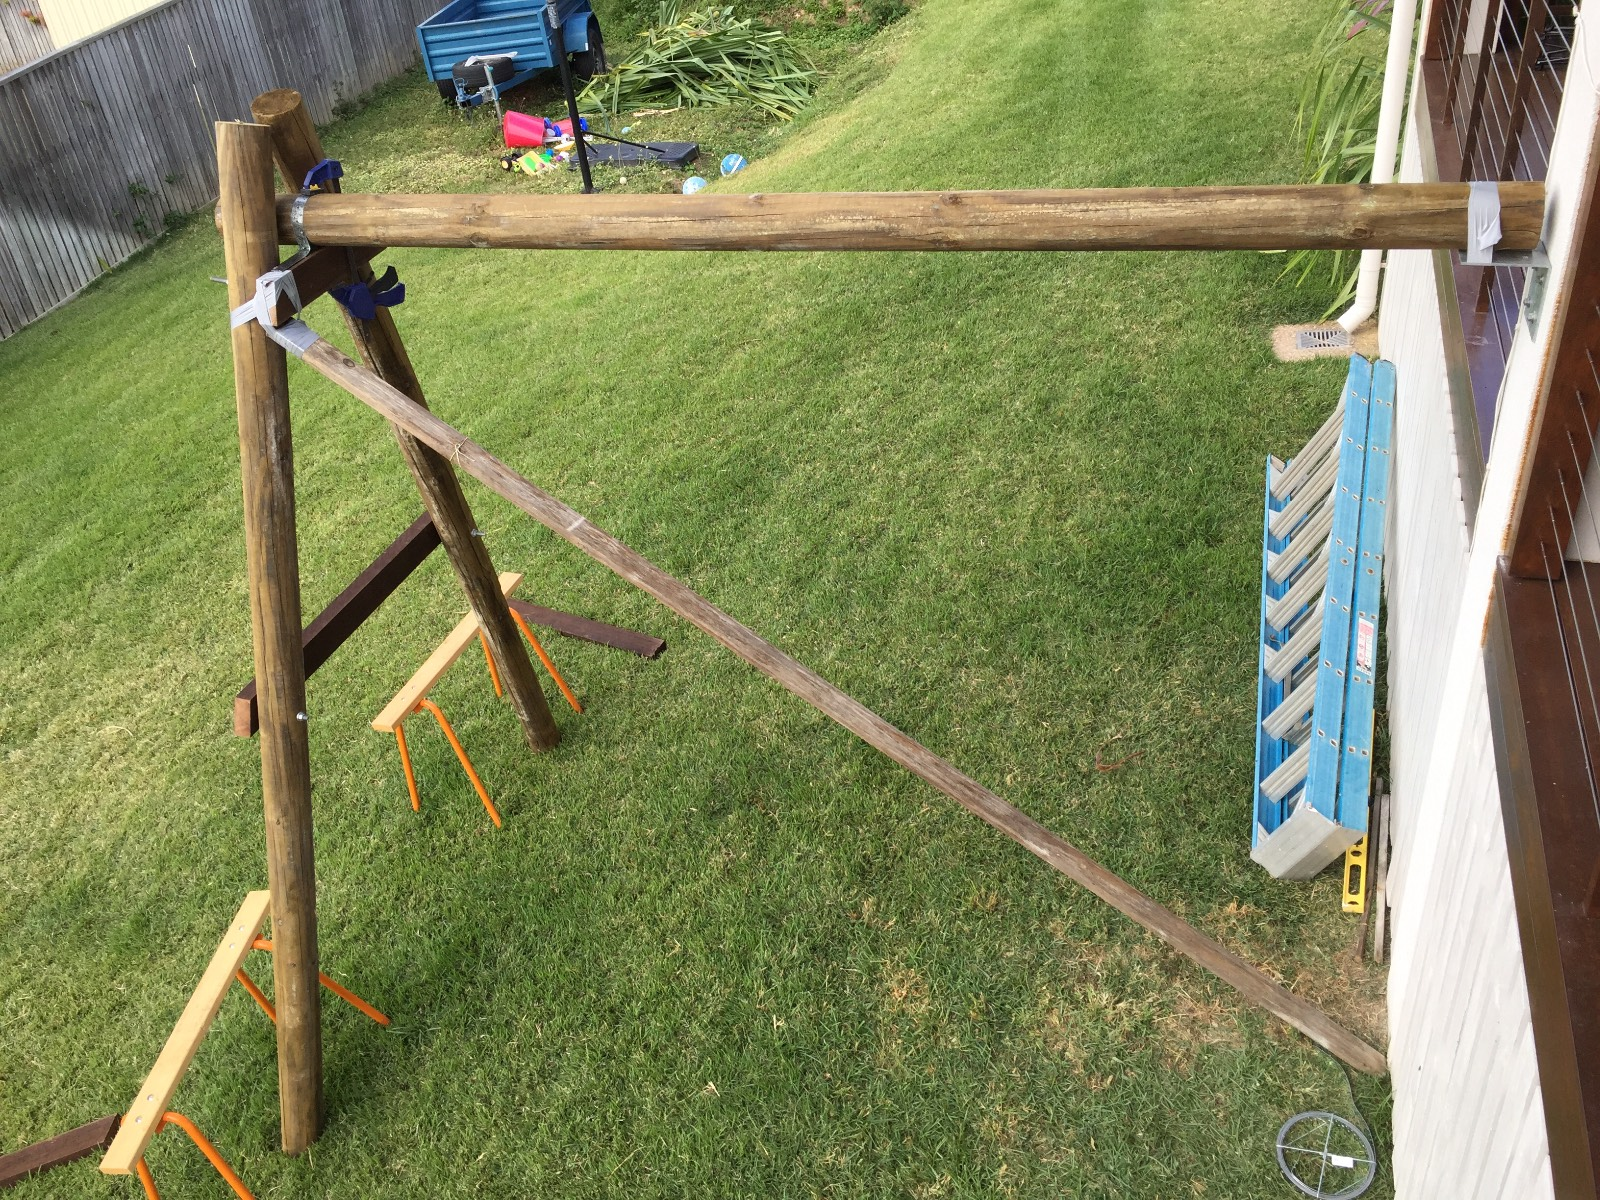 Attaching kids swing to side of house - is this ok?